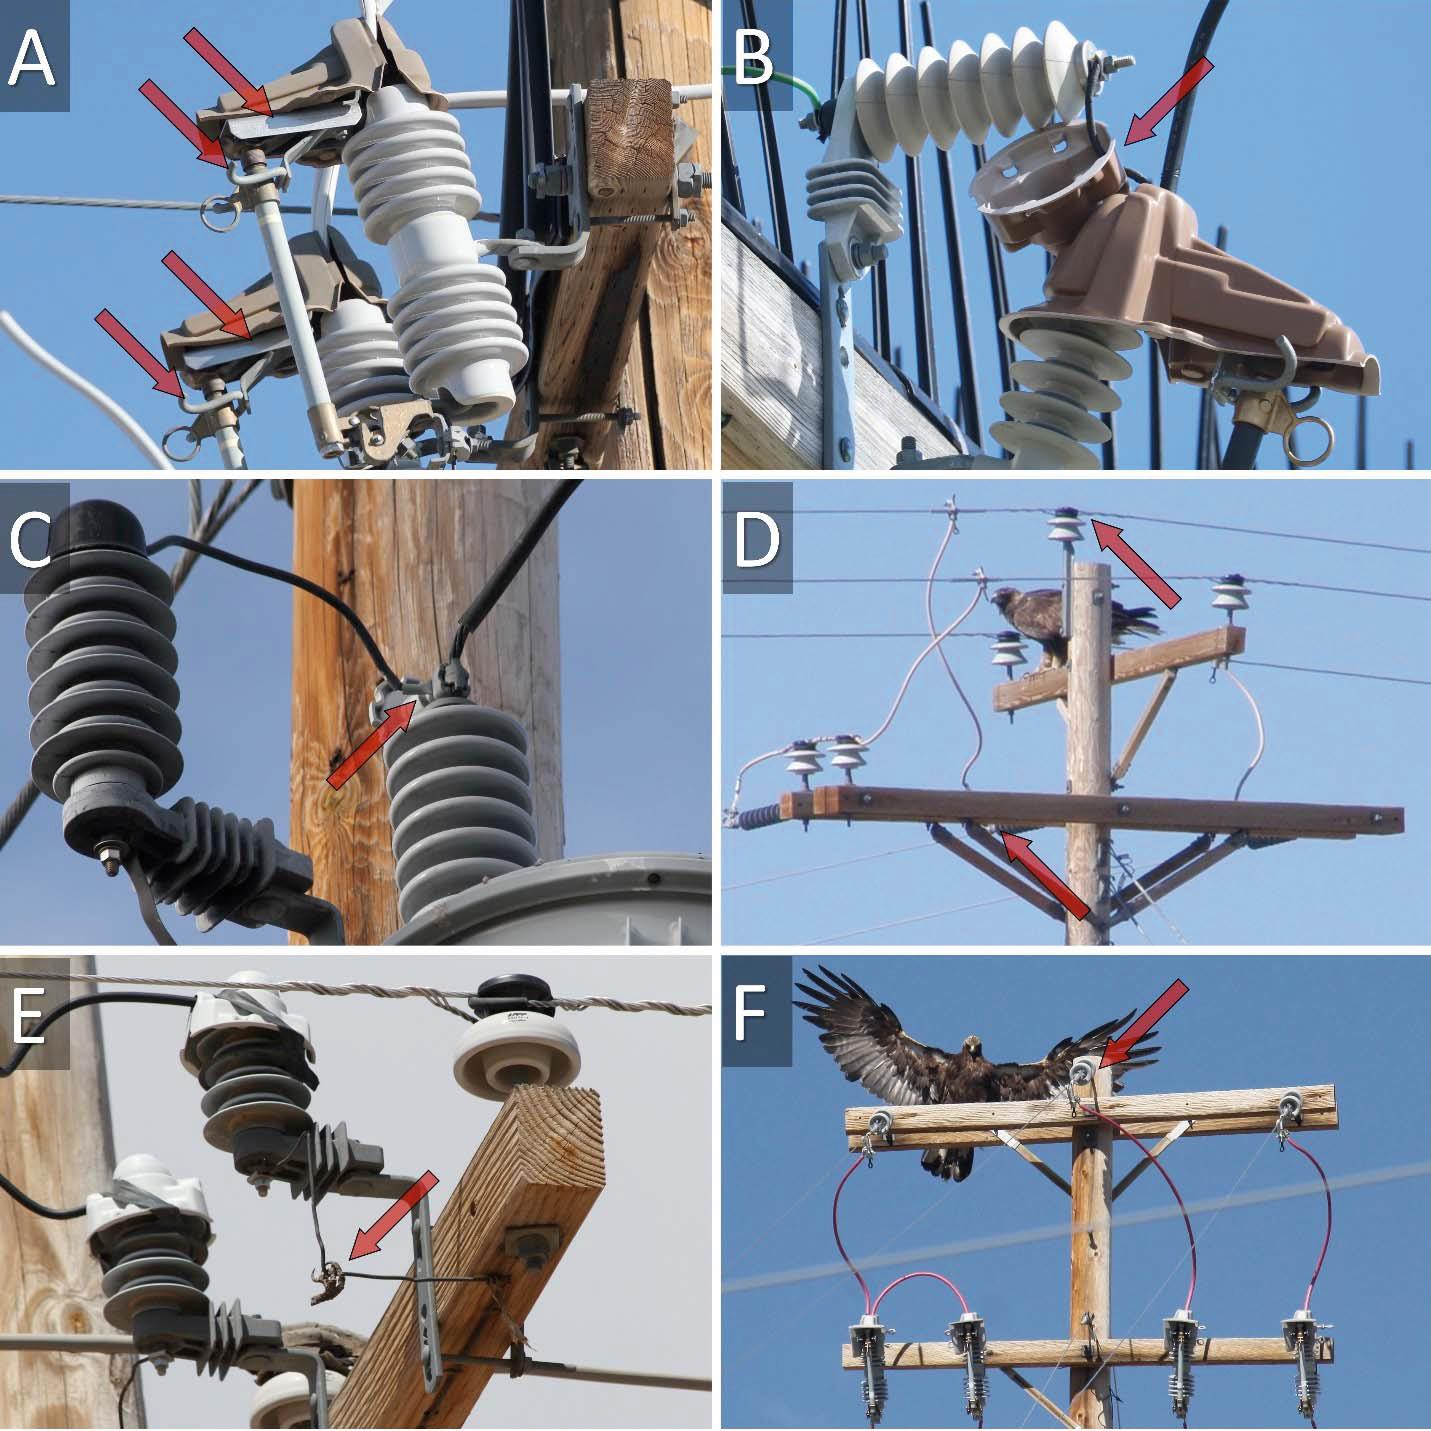 Avian Electrocutions on Incorrectly Retrofitted Power Poles